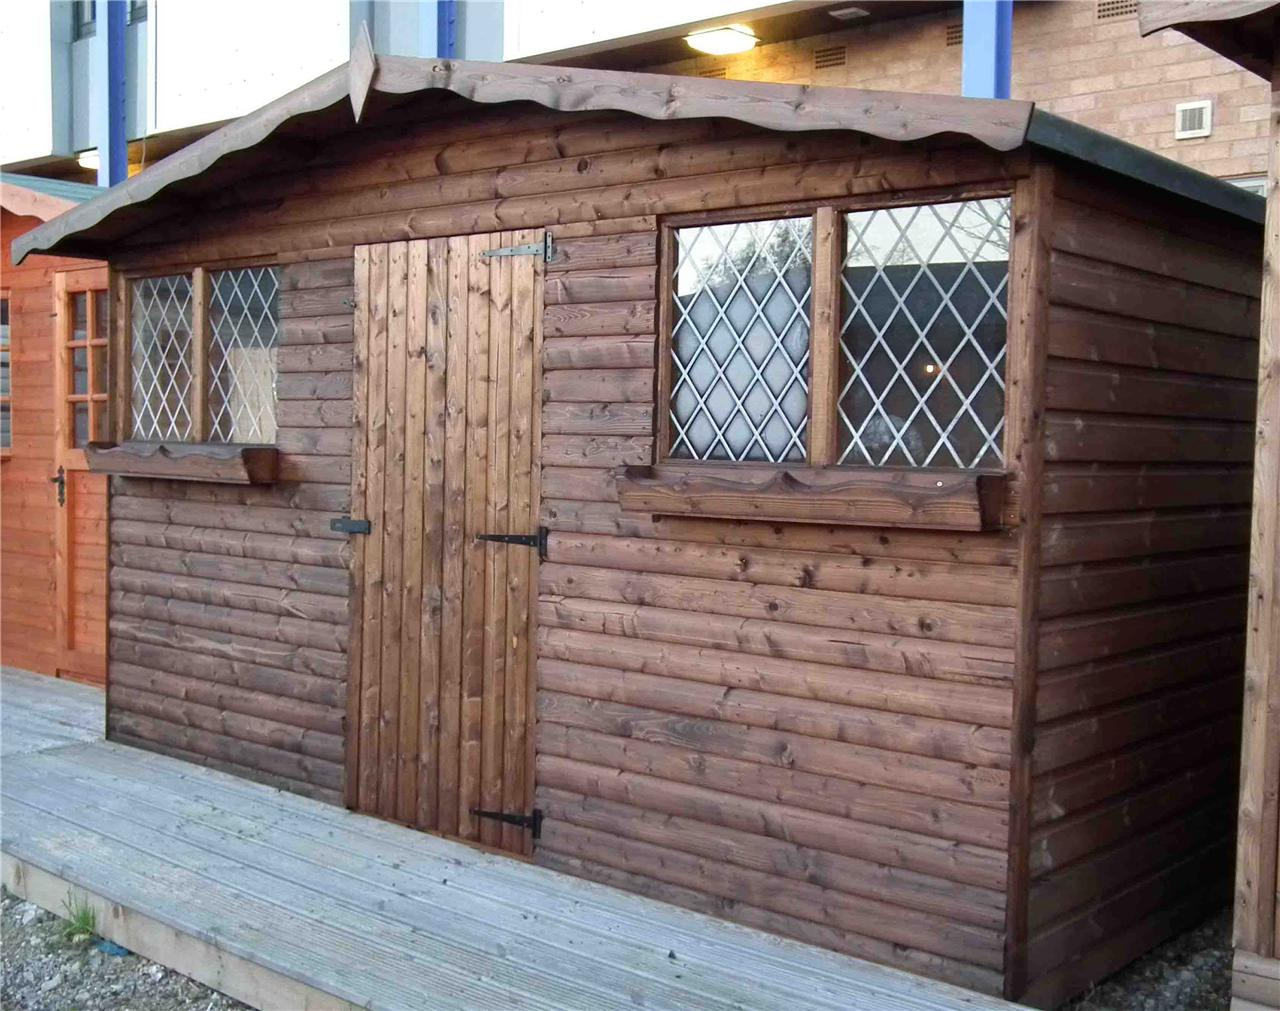 Woodworking Projects Sofa Garden Sheds On Ebay Storage Shed Plans